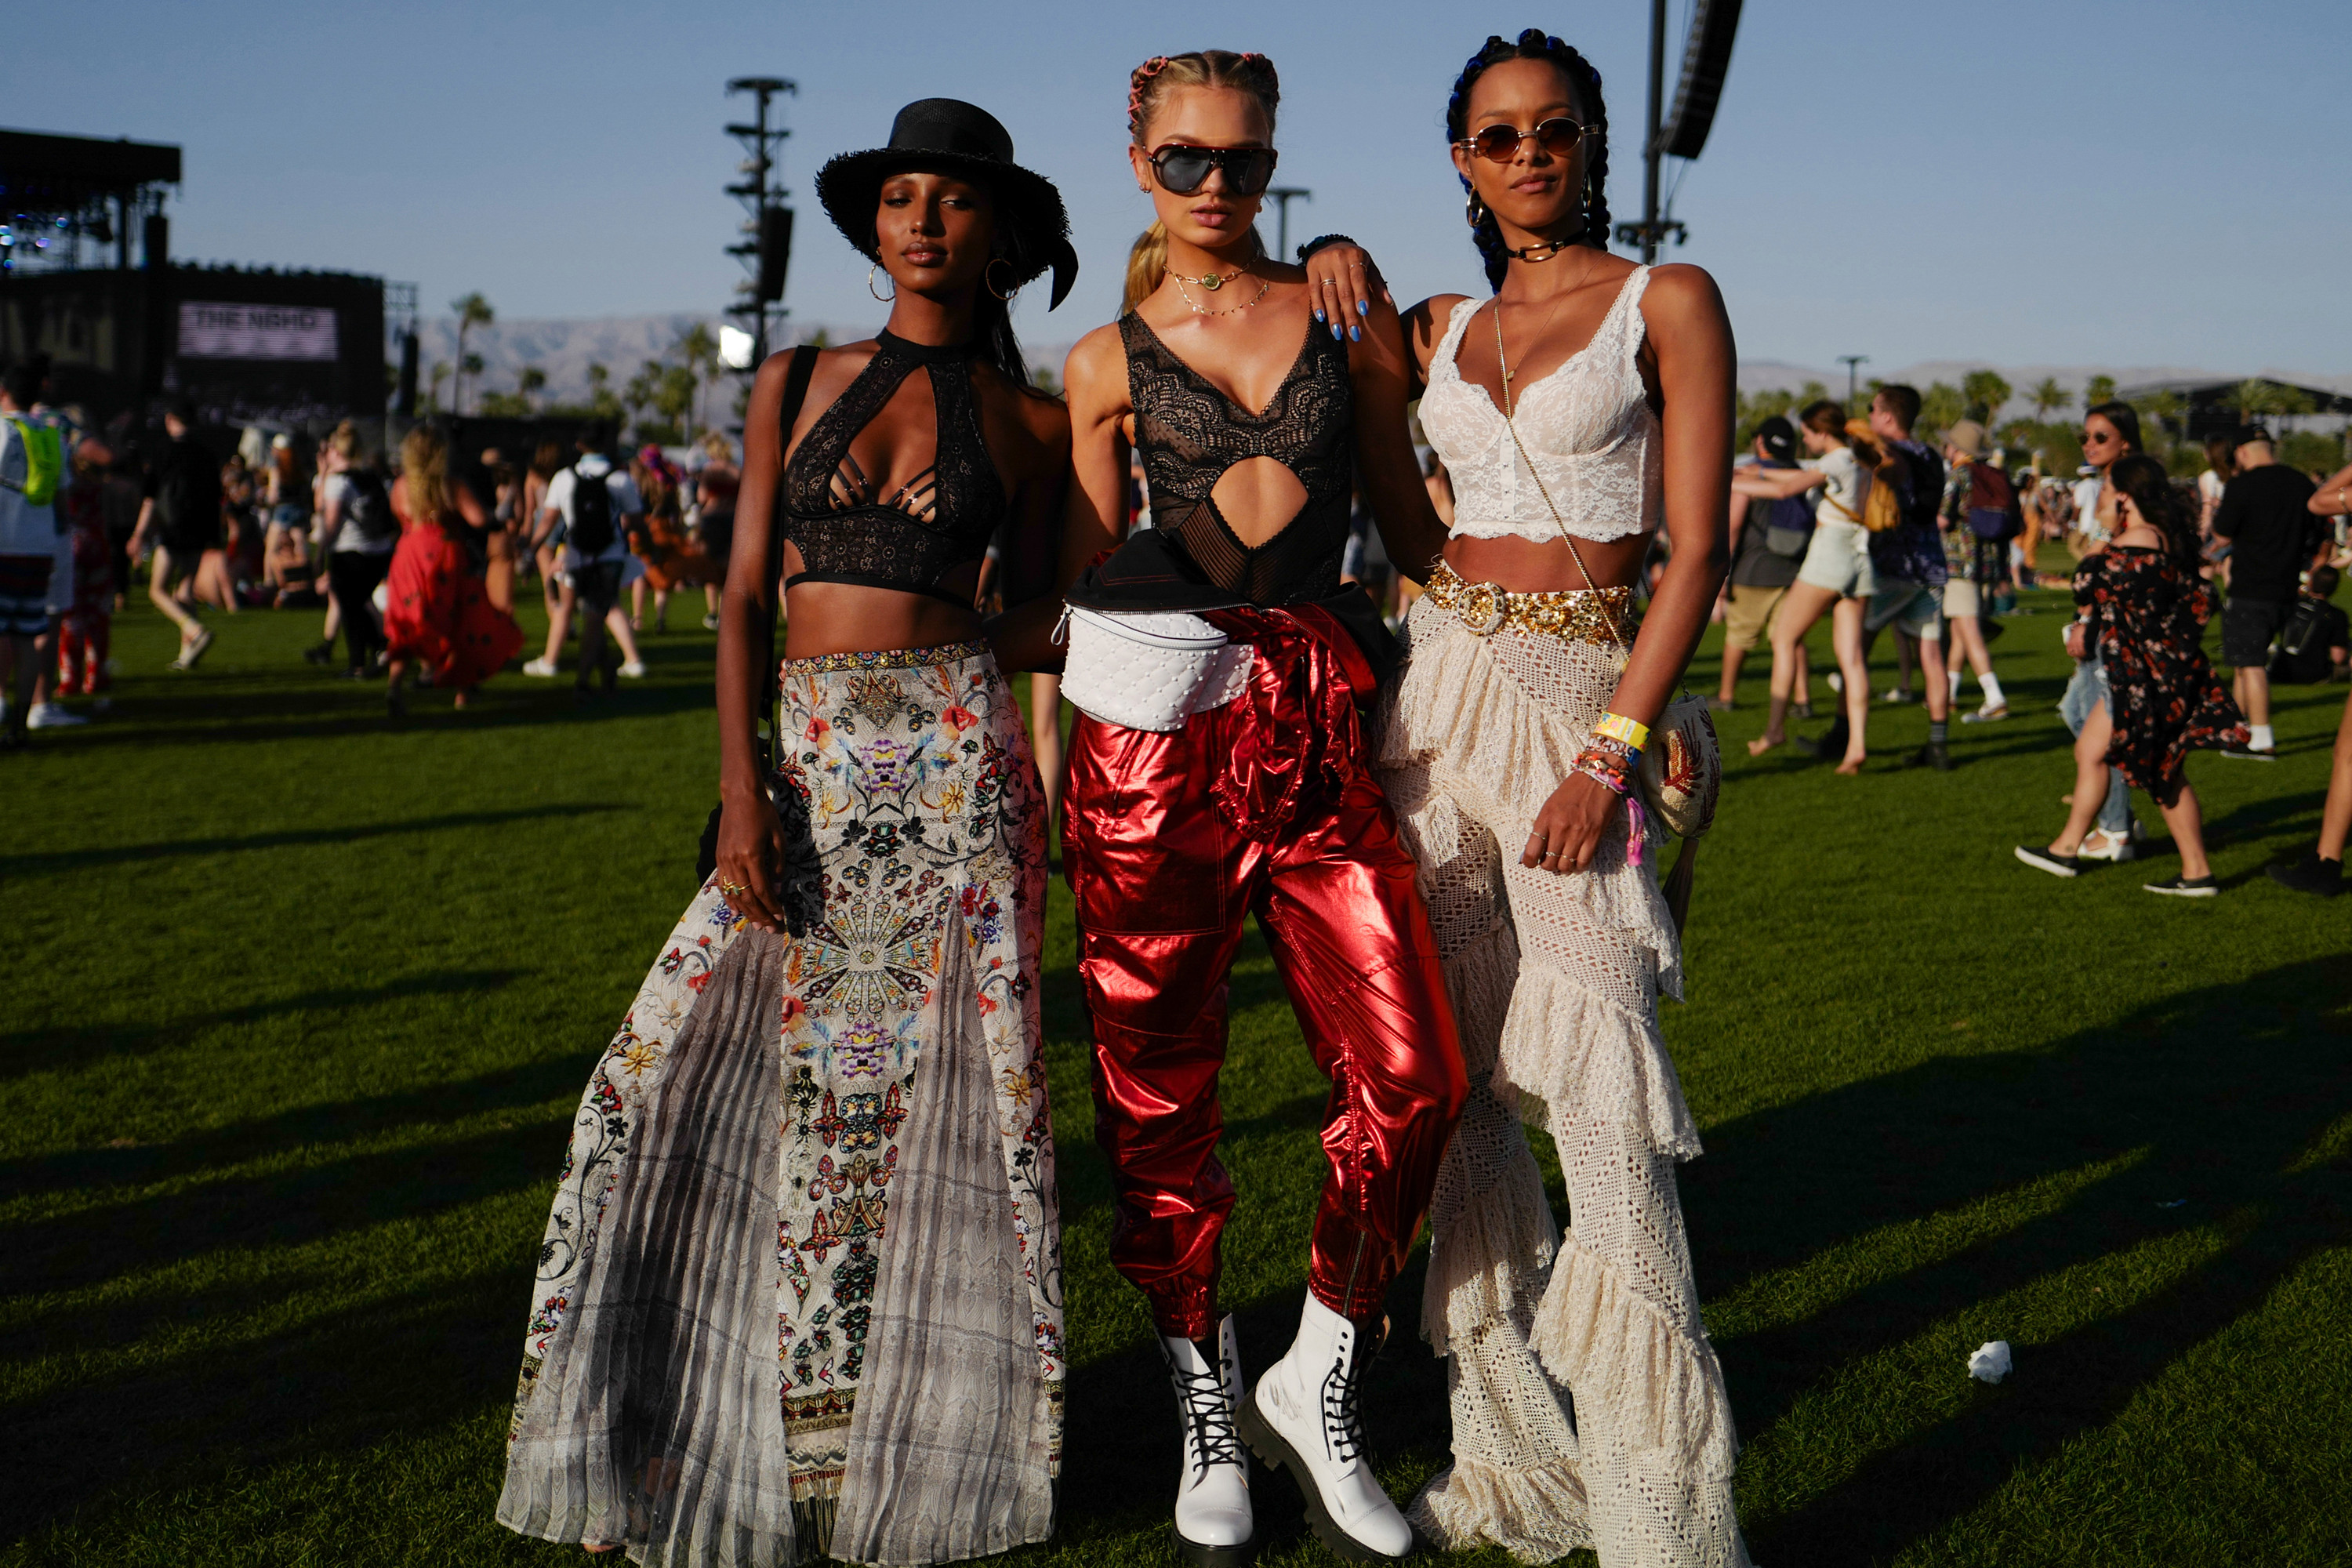 New Trends All About Coachella Festival And The Fashion Statement 6 new trends New Trends: All About Coachella Festival And The Fashion Statement New Trends All About Coachella Festival And The Fashion Statement 6